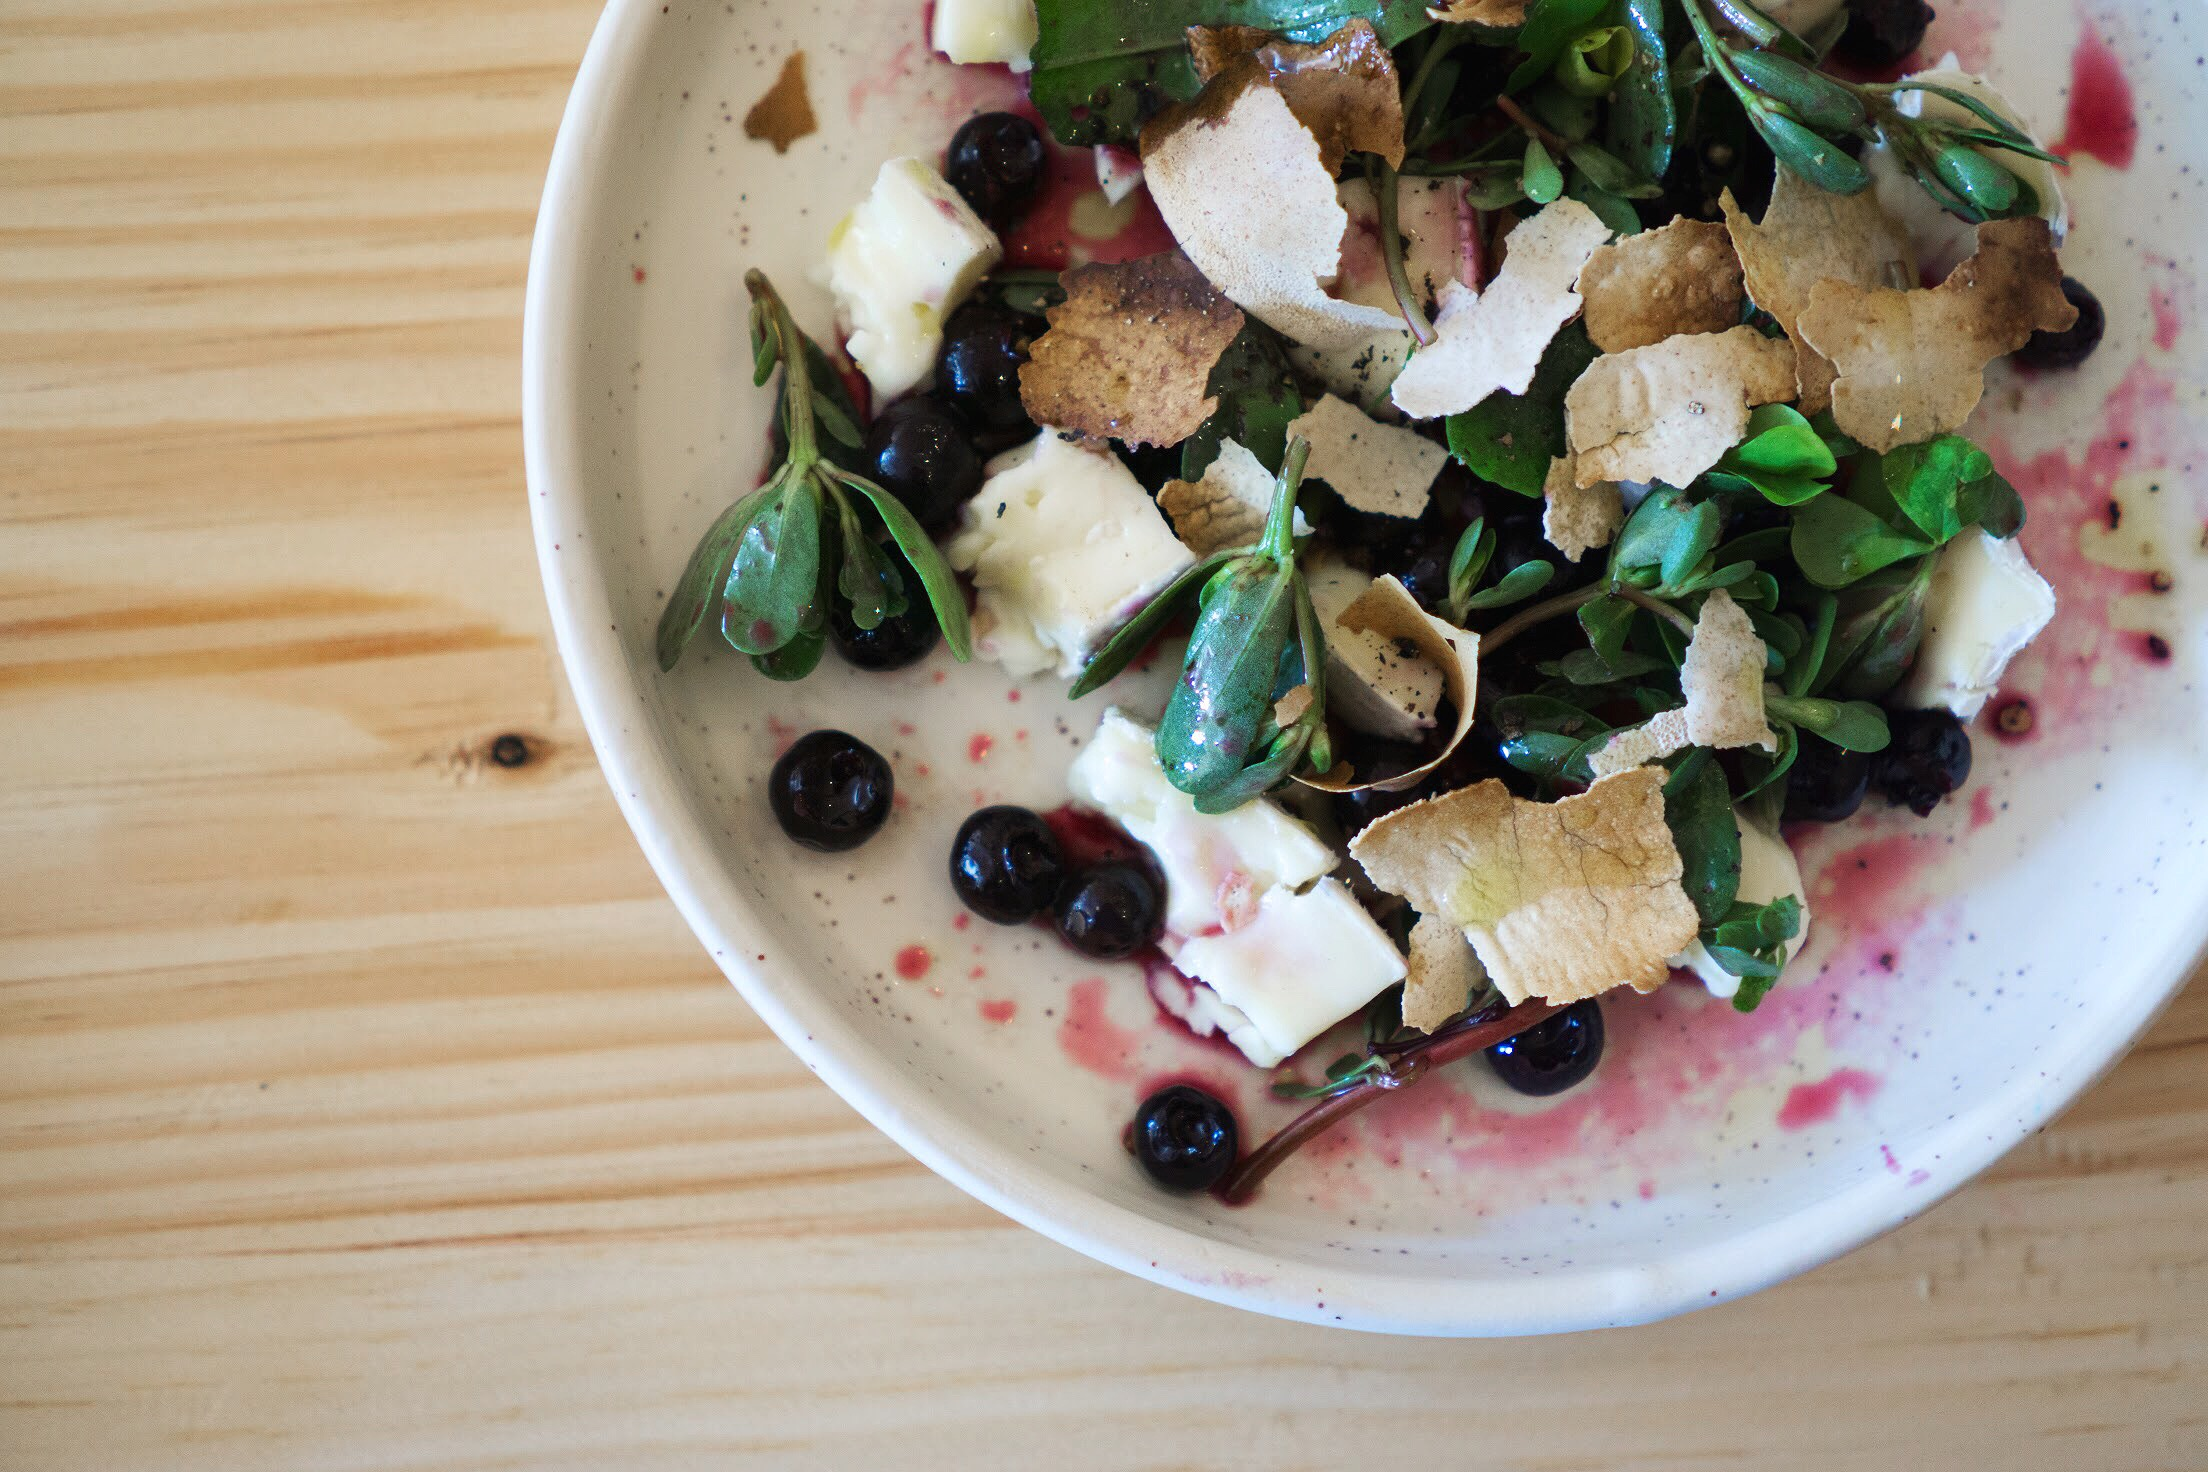 Melinda Mae cheese, sweet and sour blueberries, elderflower, purslane, sorrel and rye.  Photo by Alycia Chrosniak